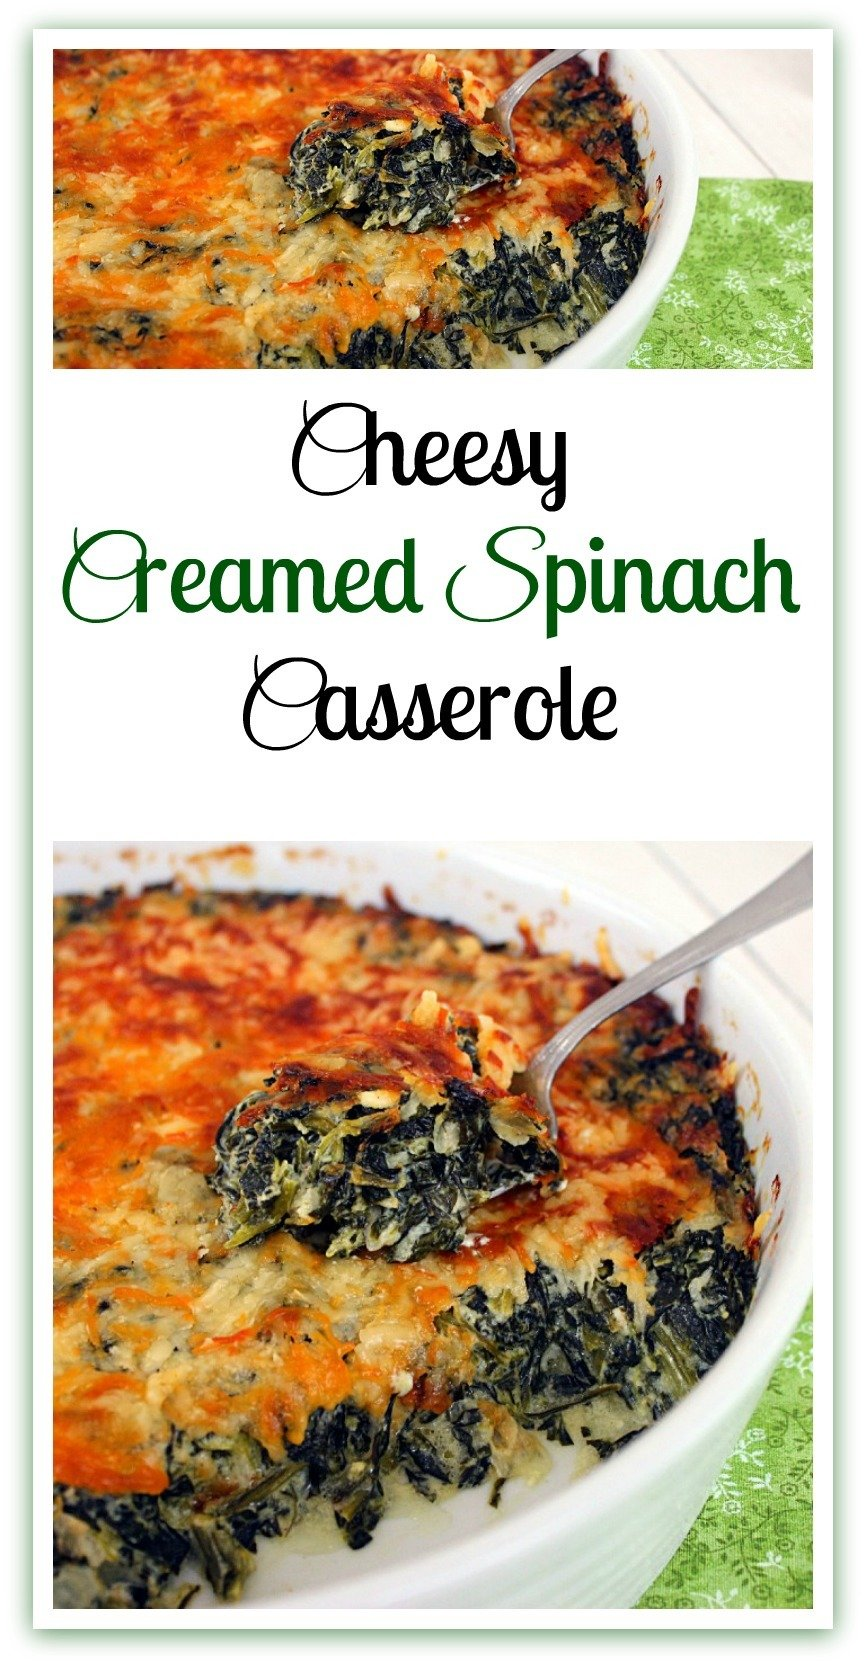 Cheesy Creamed Spinach Casserole uses frozen chopped spinach for the creamed spinach base with added cream cheese and a grated cheese topping. #CheesyCreamy #SpinachCasserole